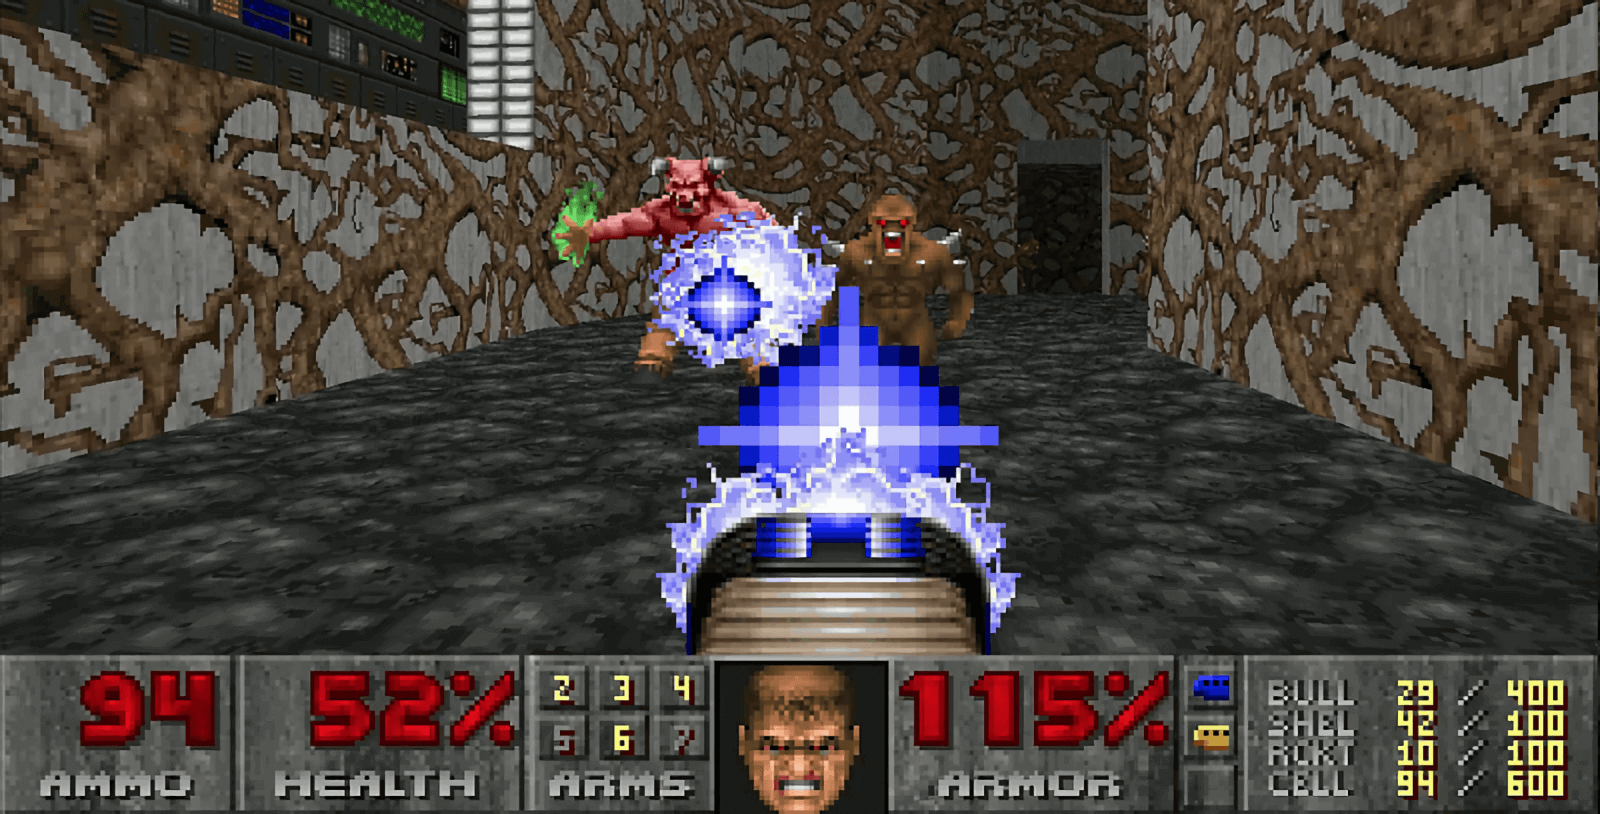 Bethesda is still updating the original Doom games from the 90s